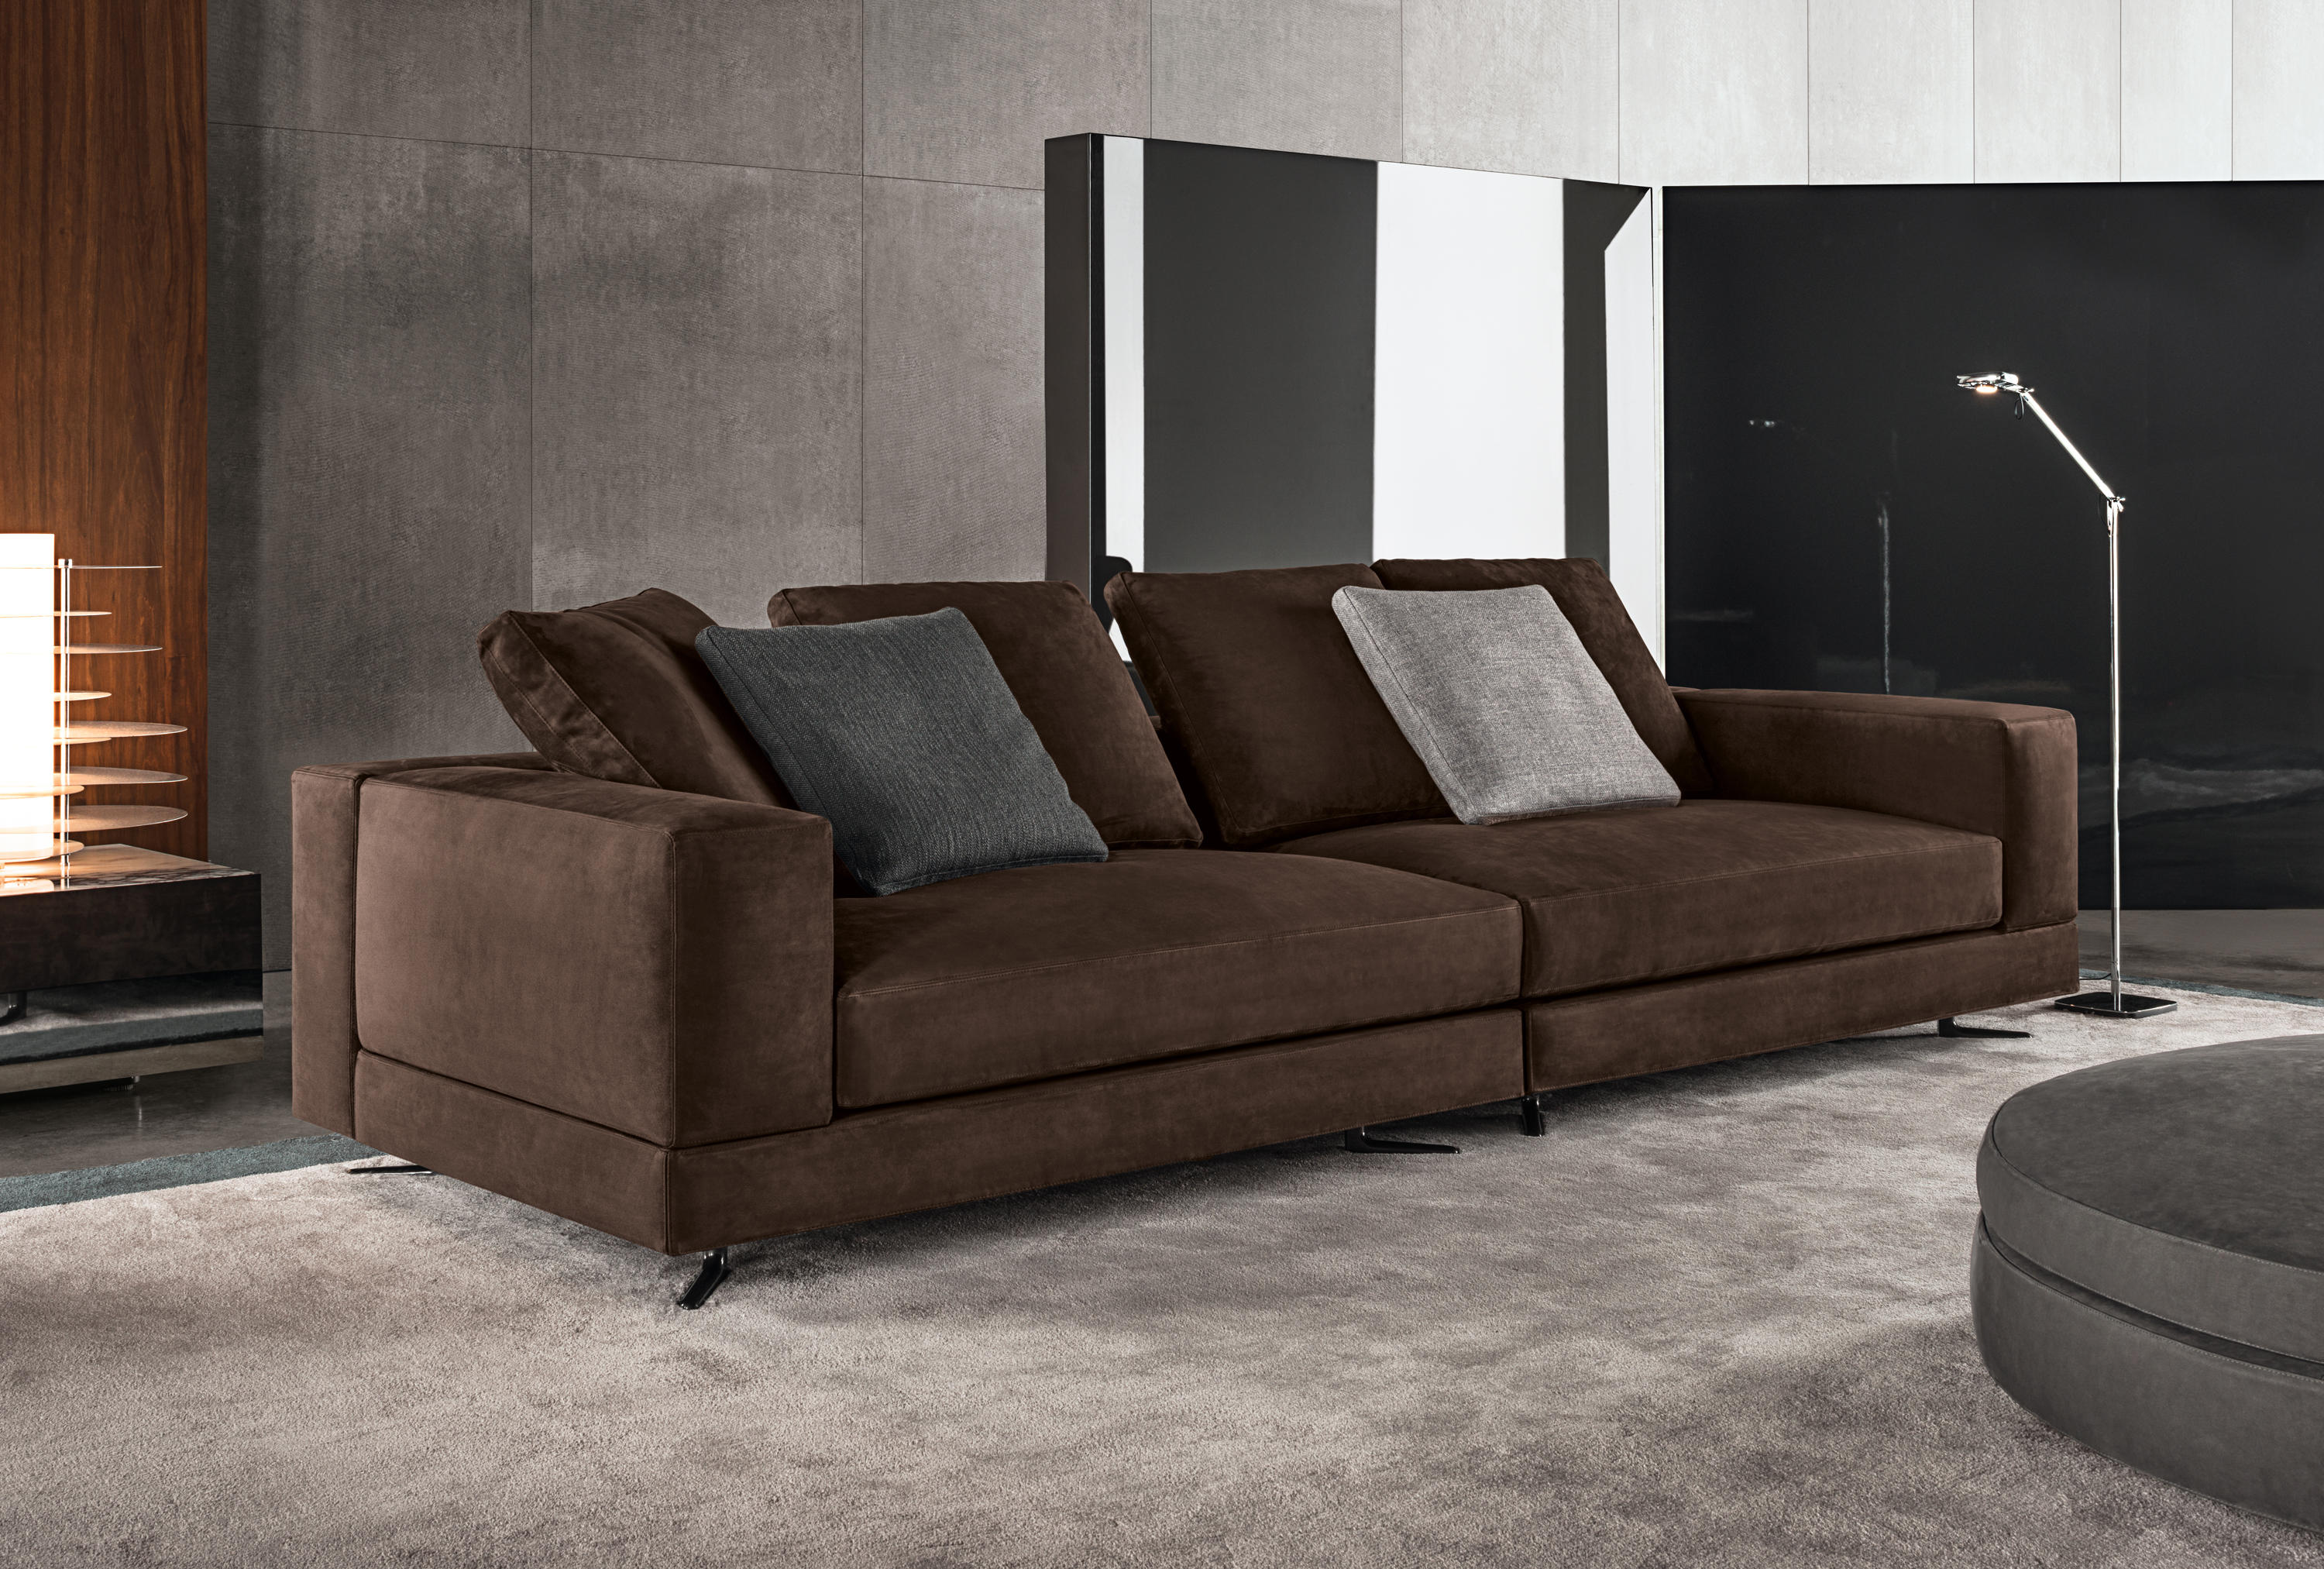 Swell White Sofas From Minotti Architonic Caraccident5 Cool Chair Designs And Ideas Caraccident5Info